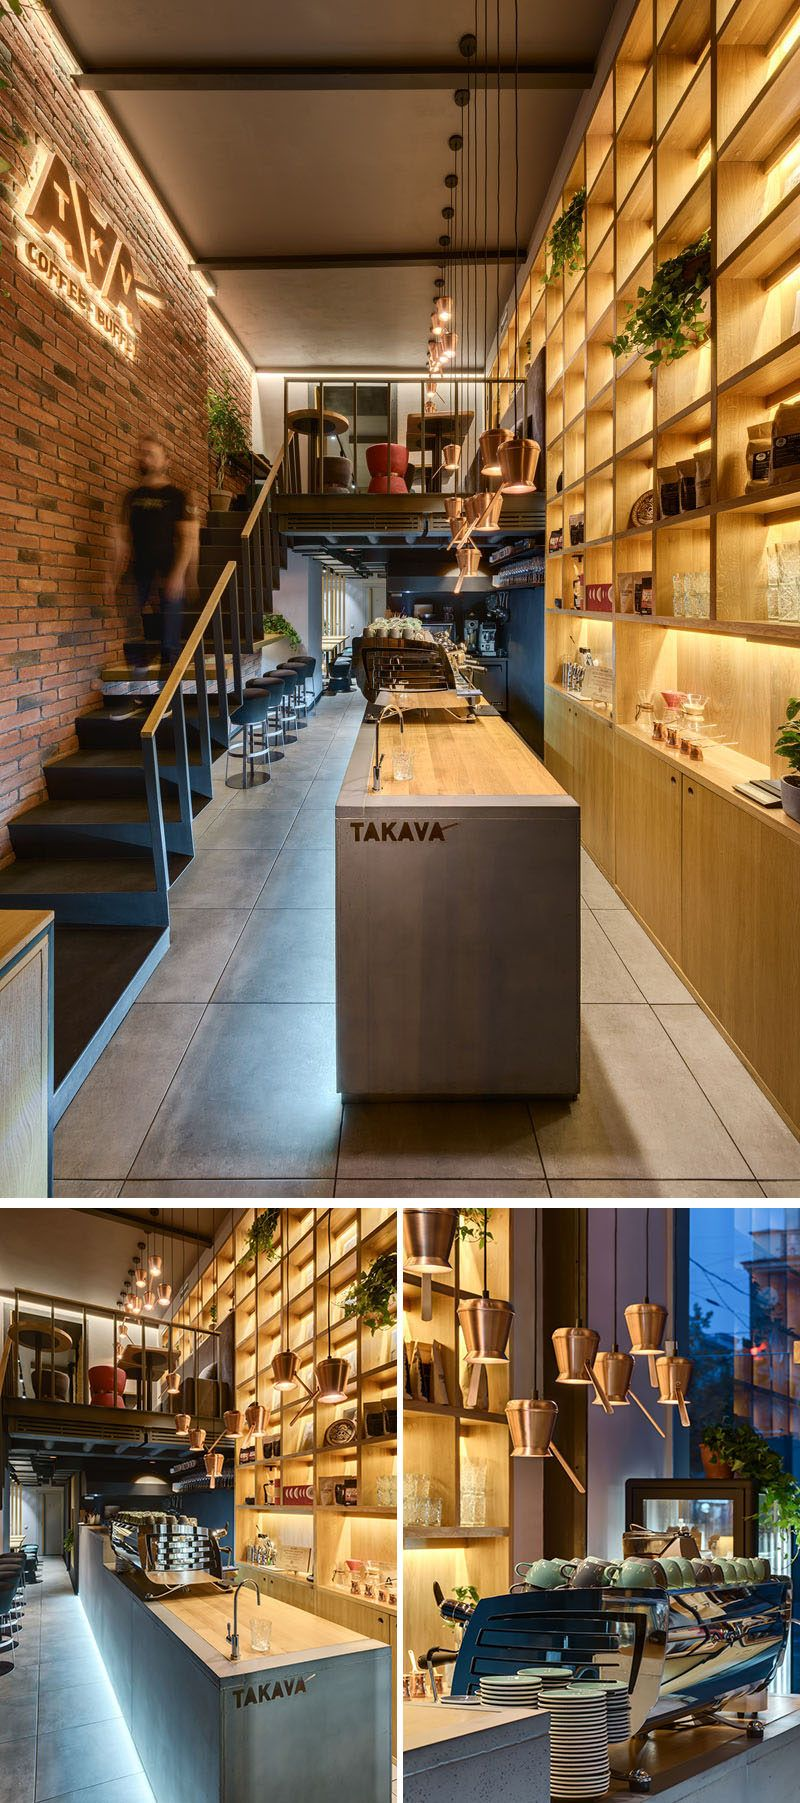 This Coffee Shop Creates A Warm Interior With The Use Of Wood And